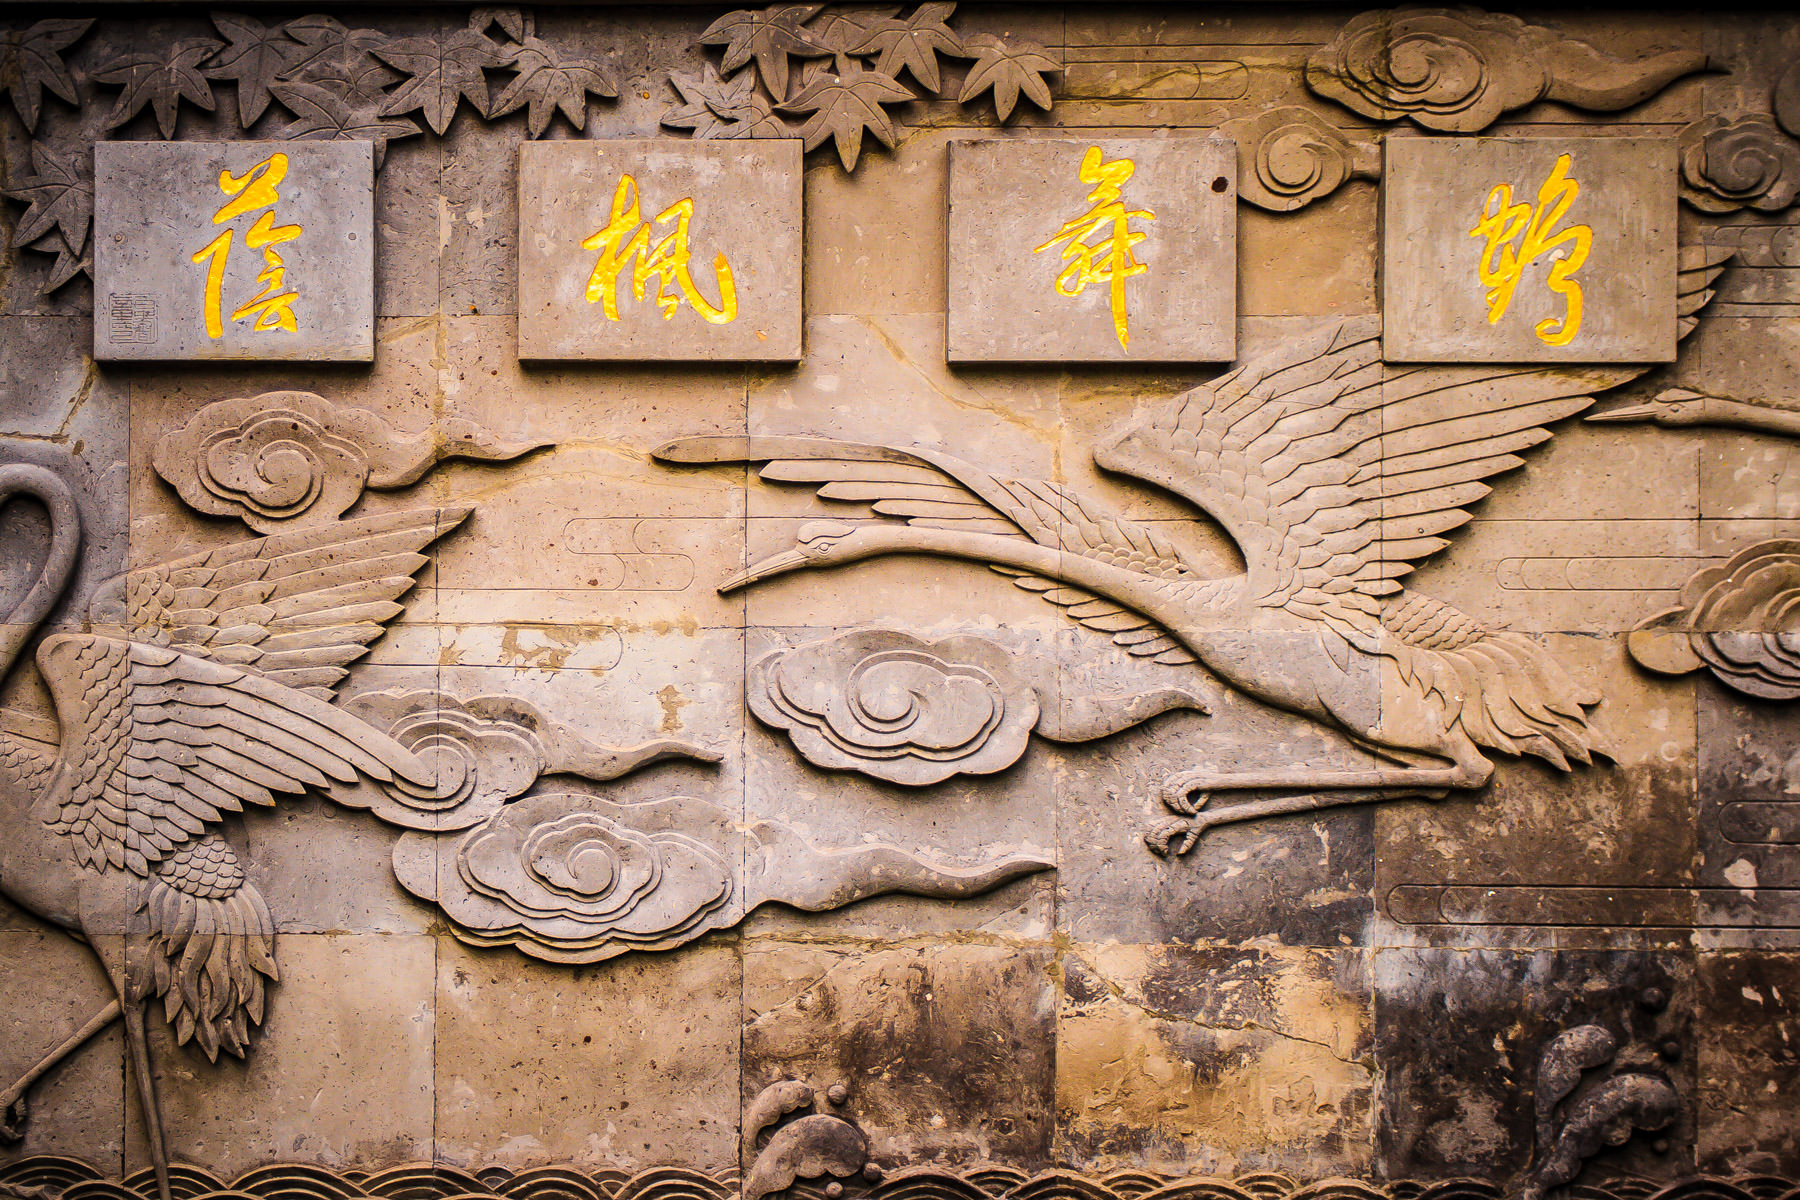 Detail from stonework in the Jardin de Chine at Montréal's Jardin Botanique.